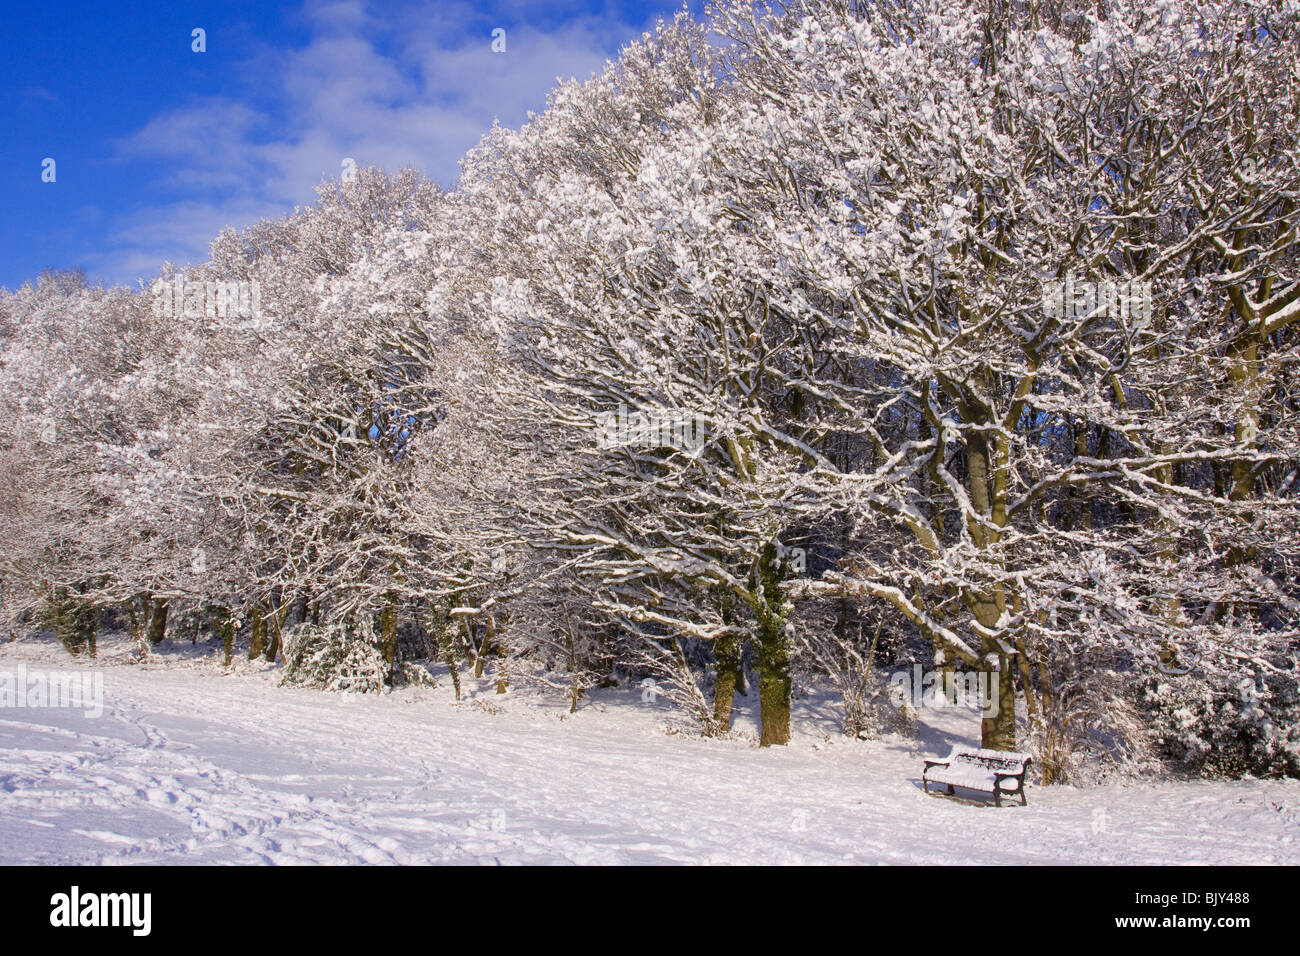 snow woods winter cold Buckinghamshire Chilterns - Stock Image